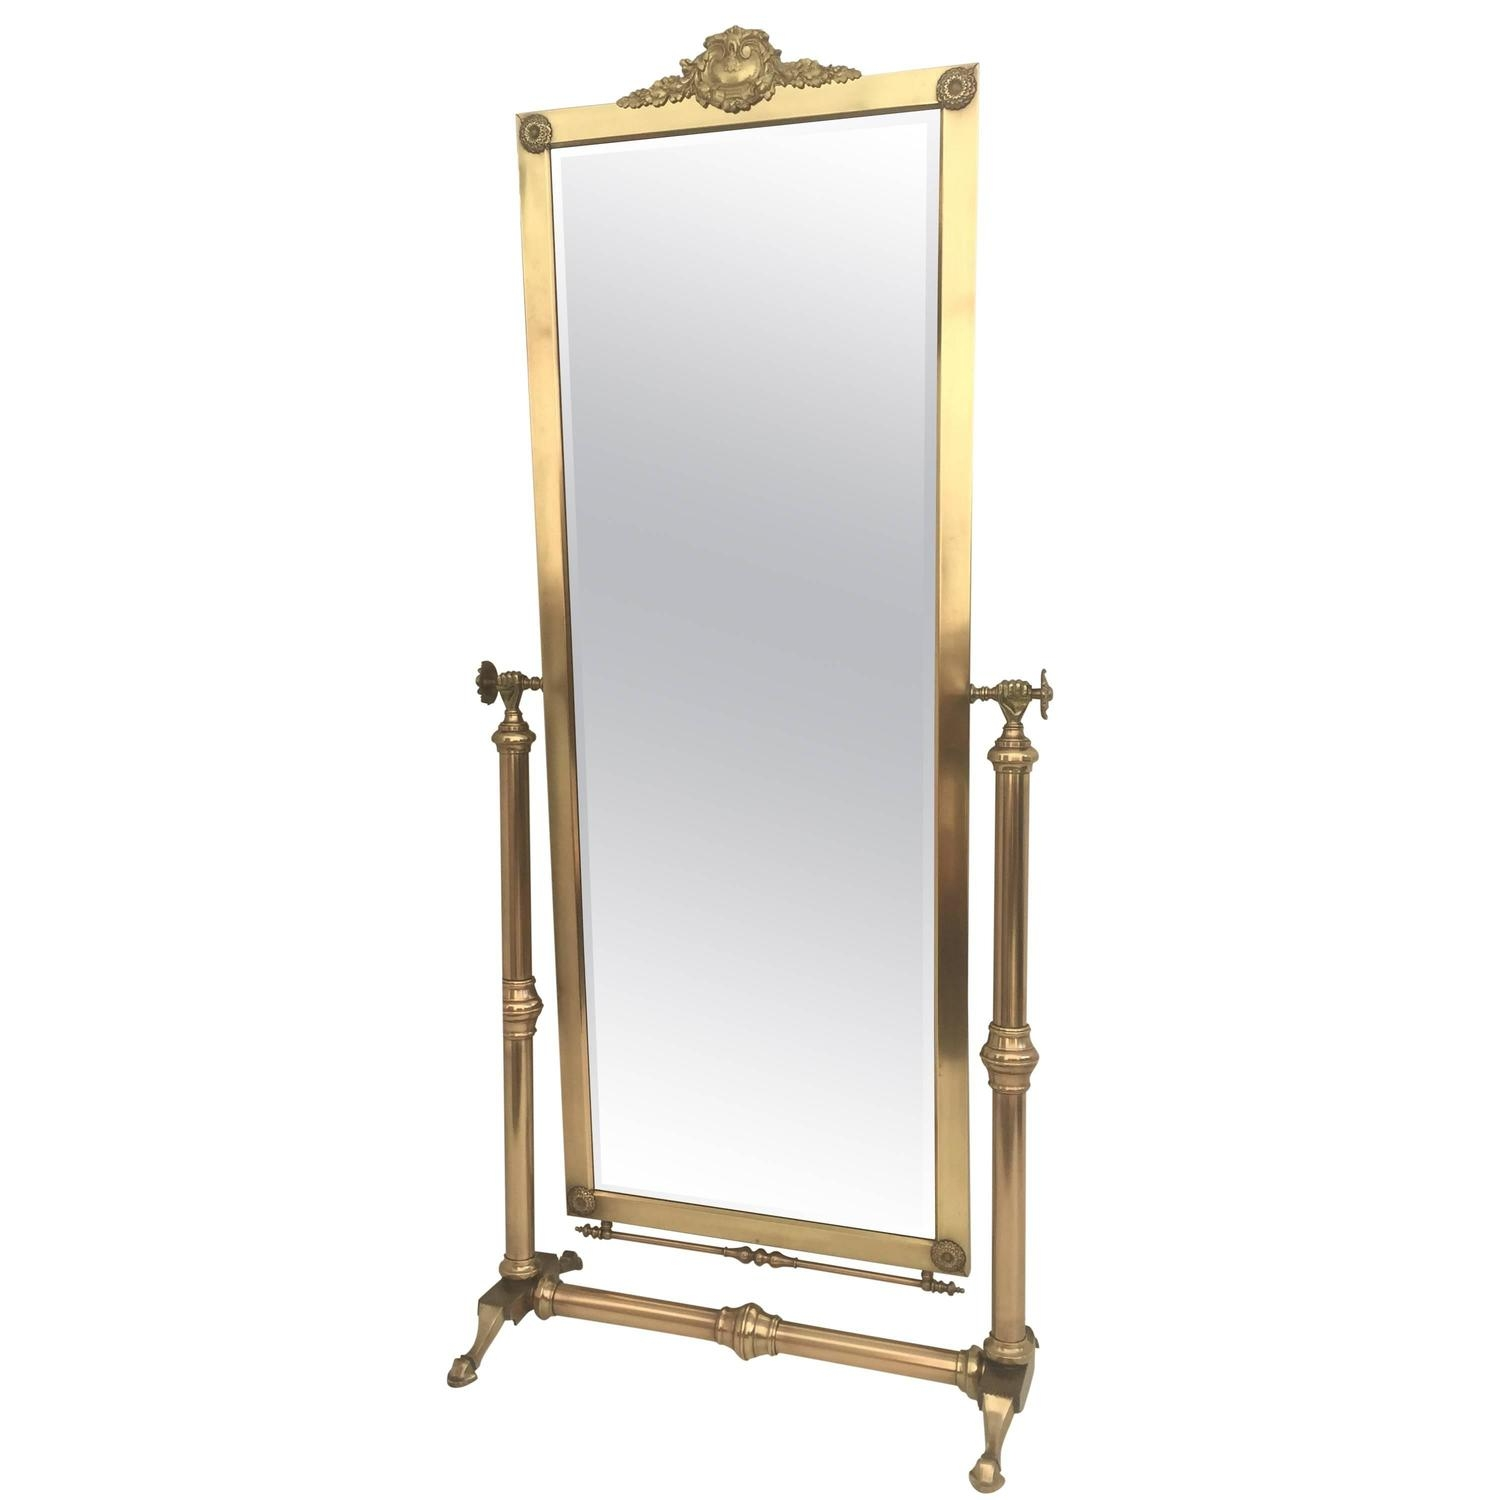 Brass mirrors for sale mirror ideas for Floor length mirror for sale